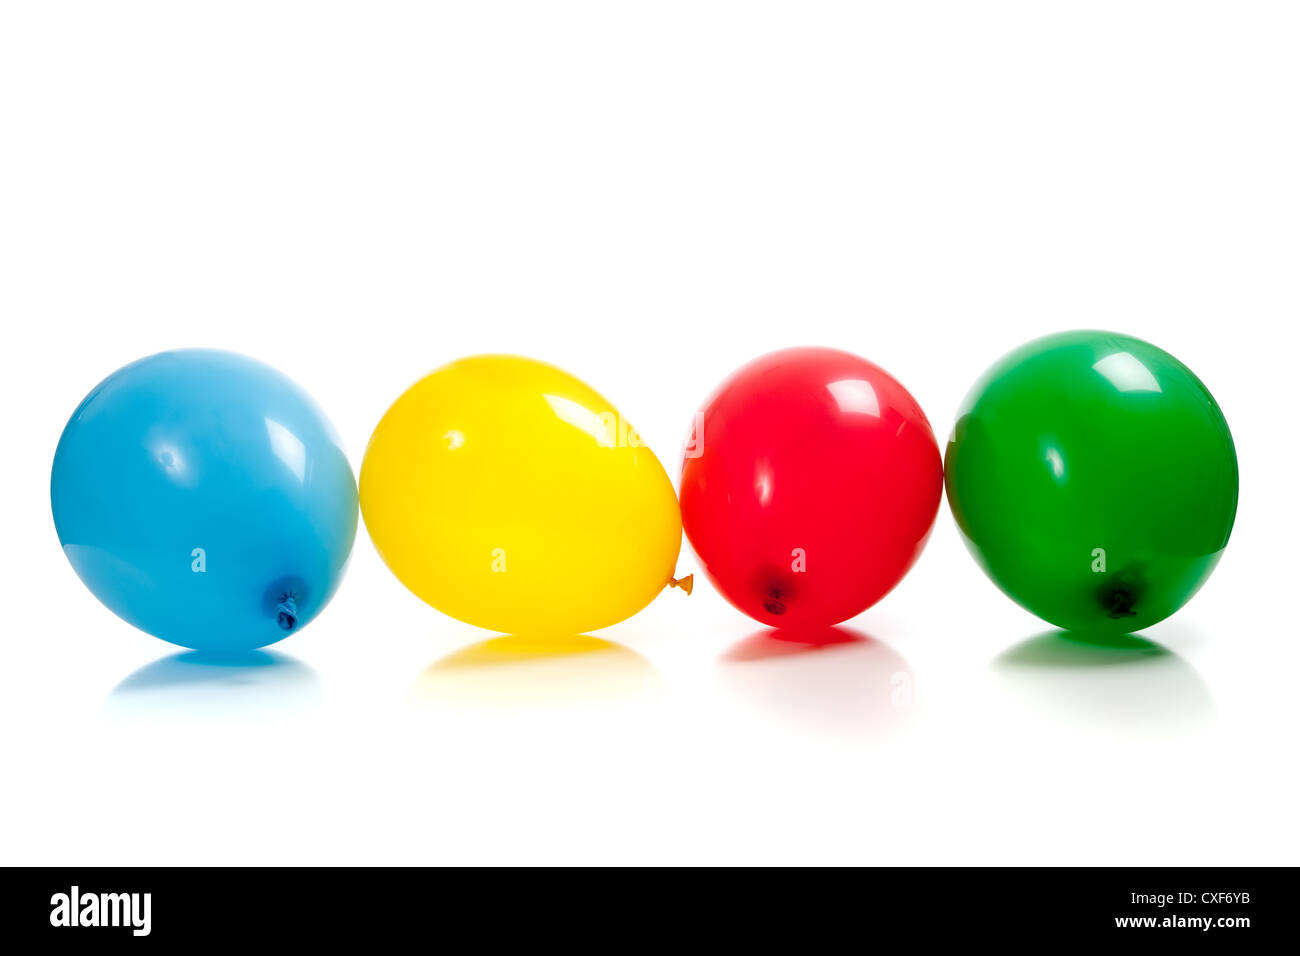 row of multicolored balloons - Stock Image